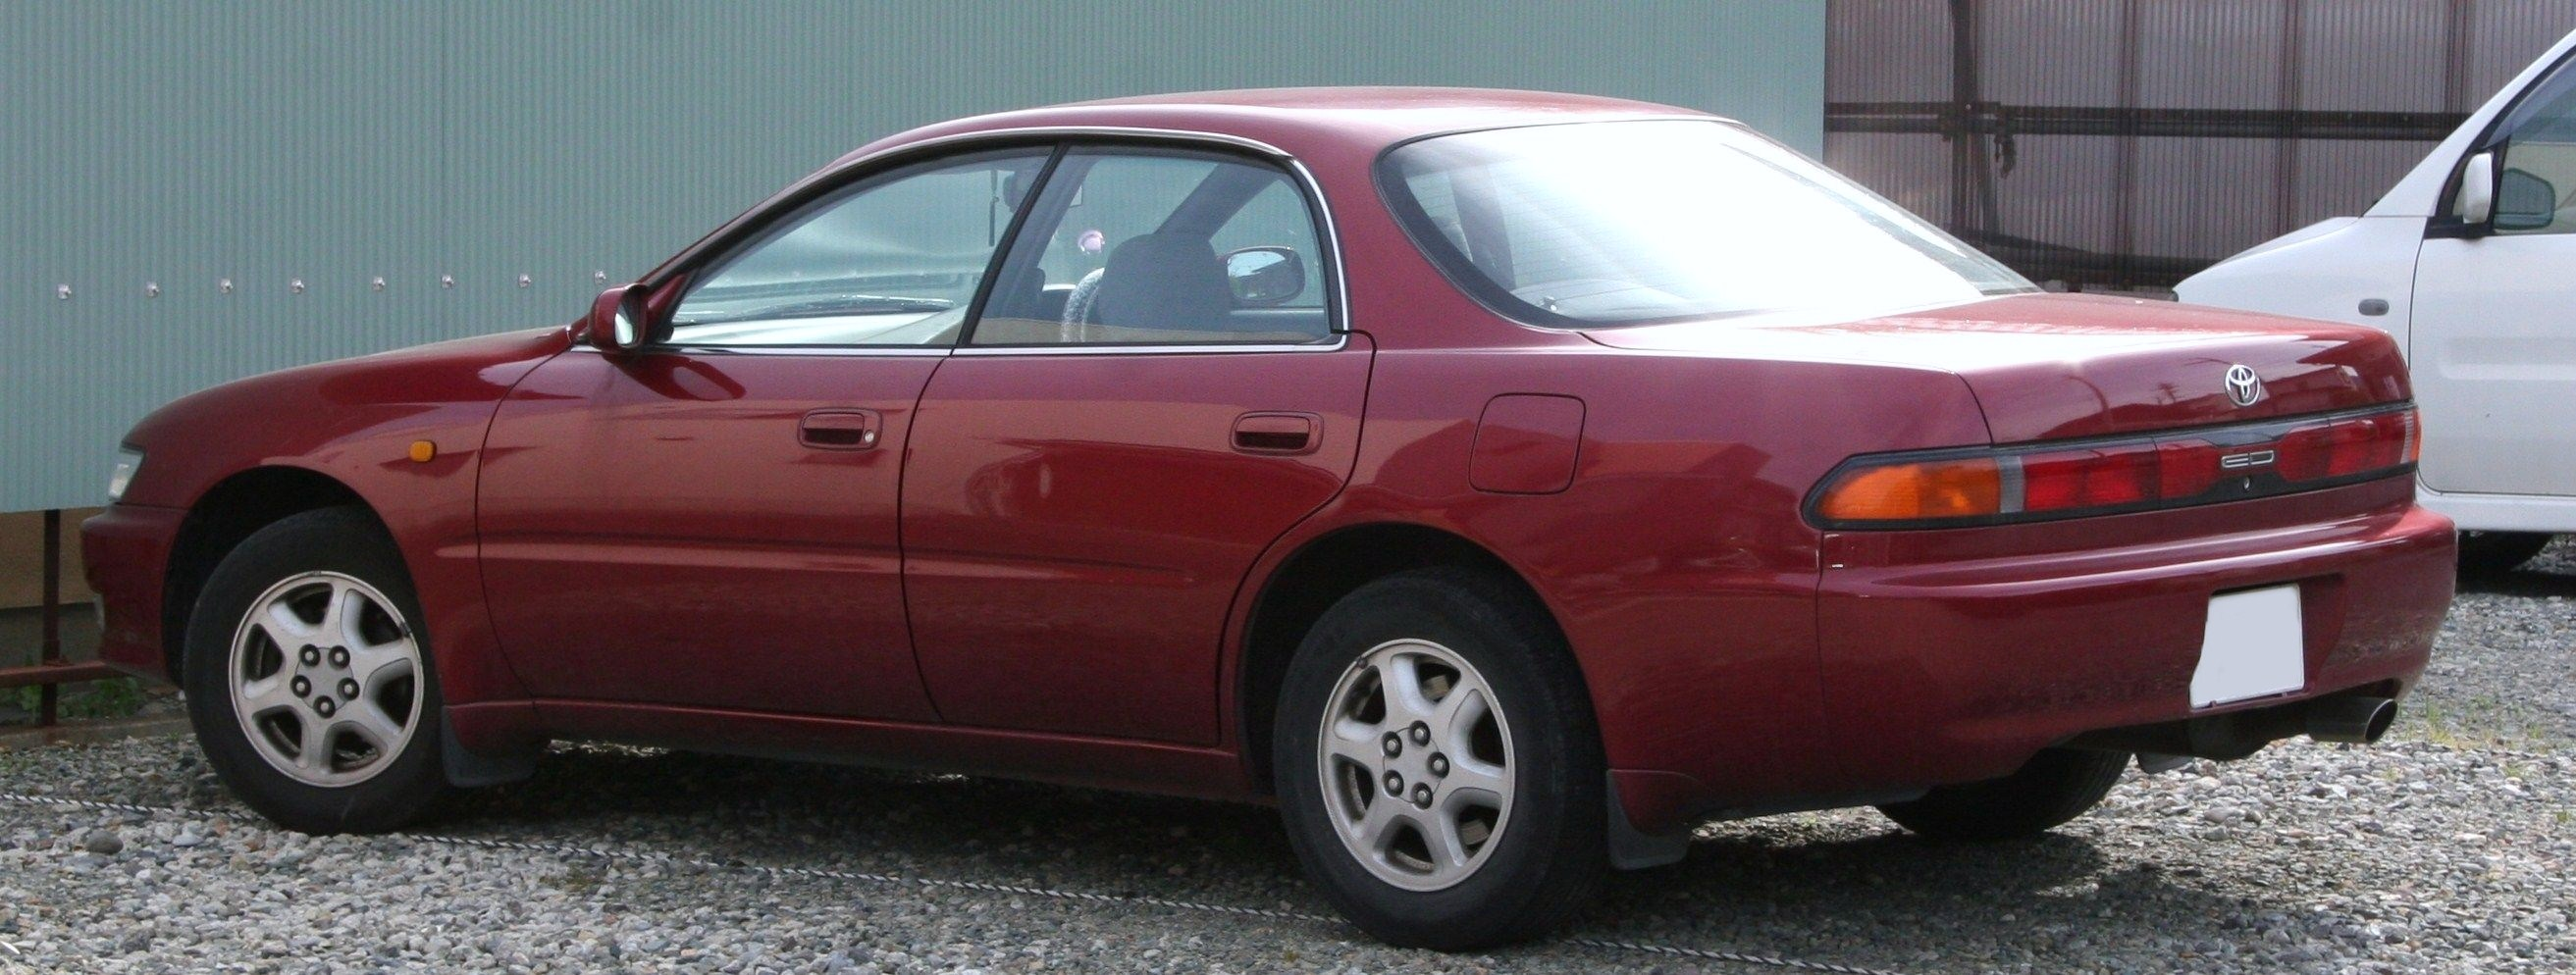 File 3rd Generation Toyota Carina Ed Rear Jpg Wikipedia